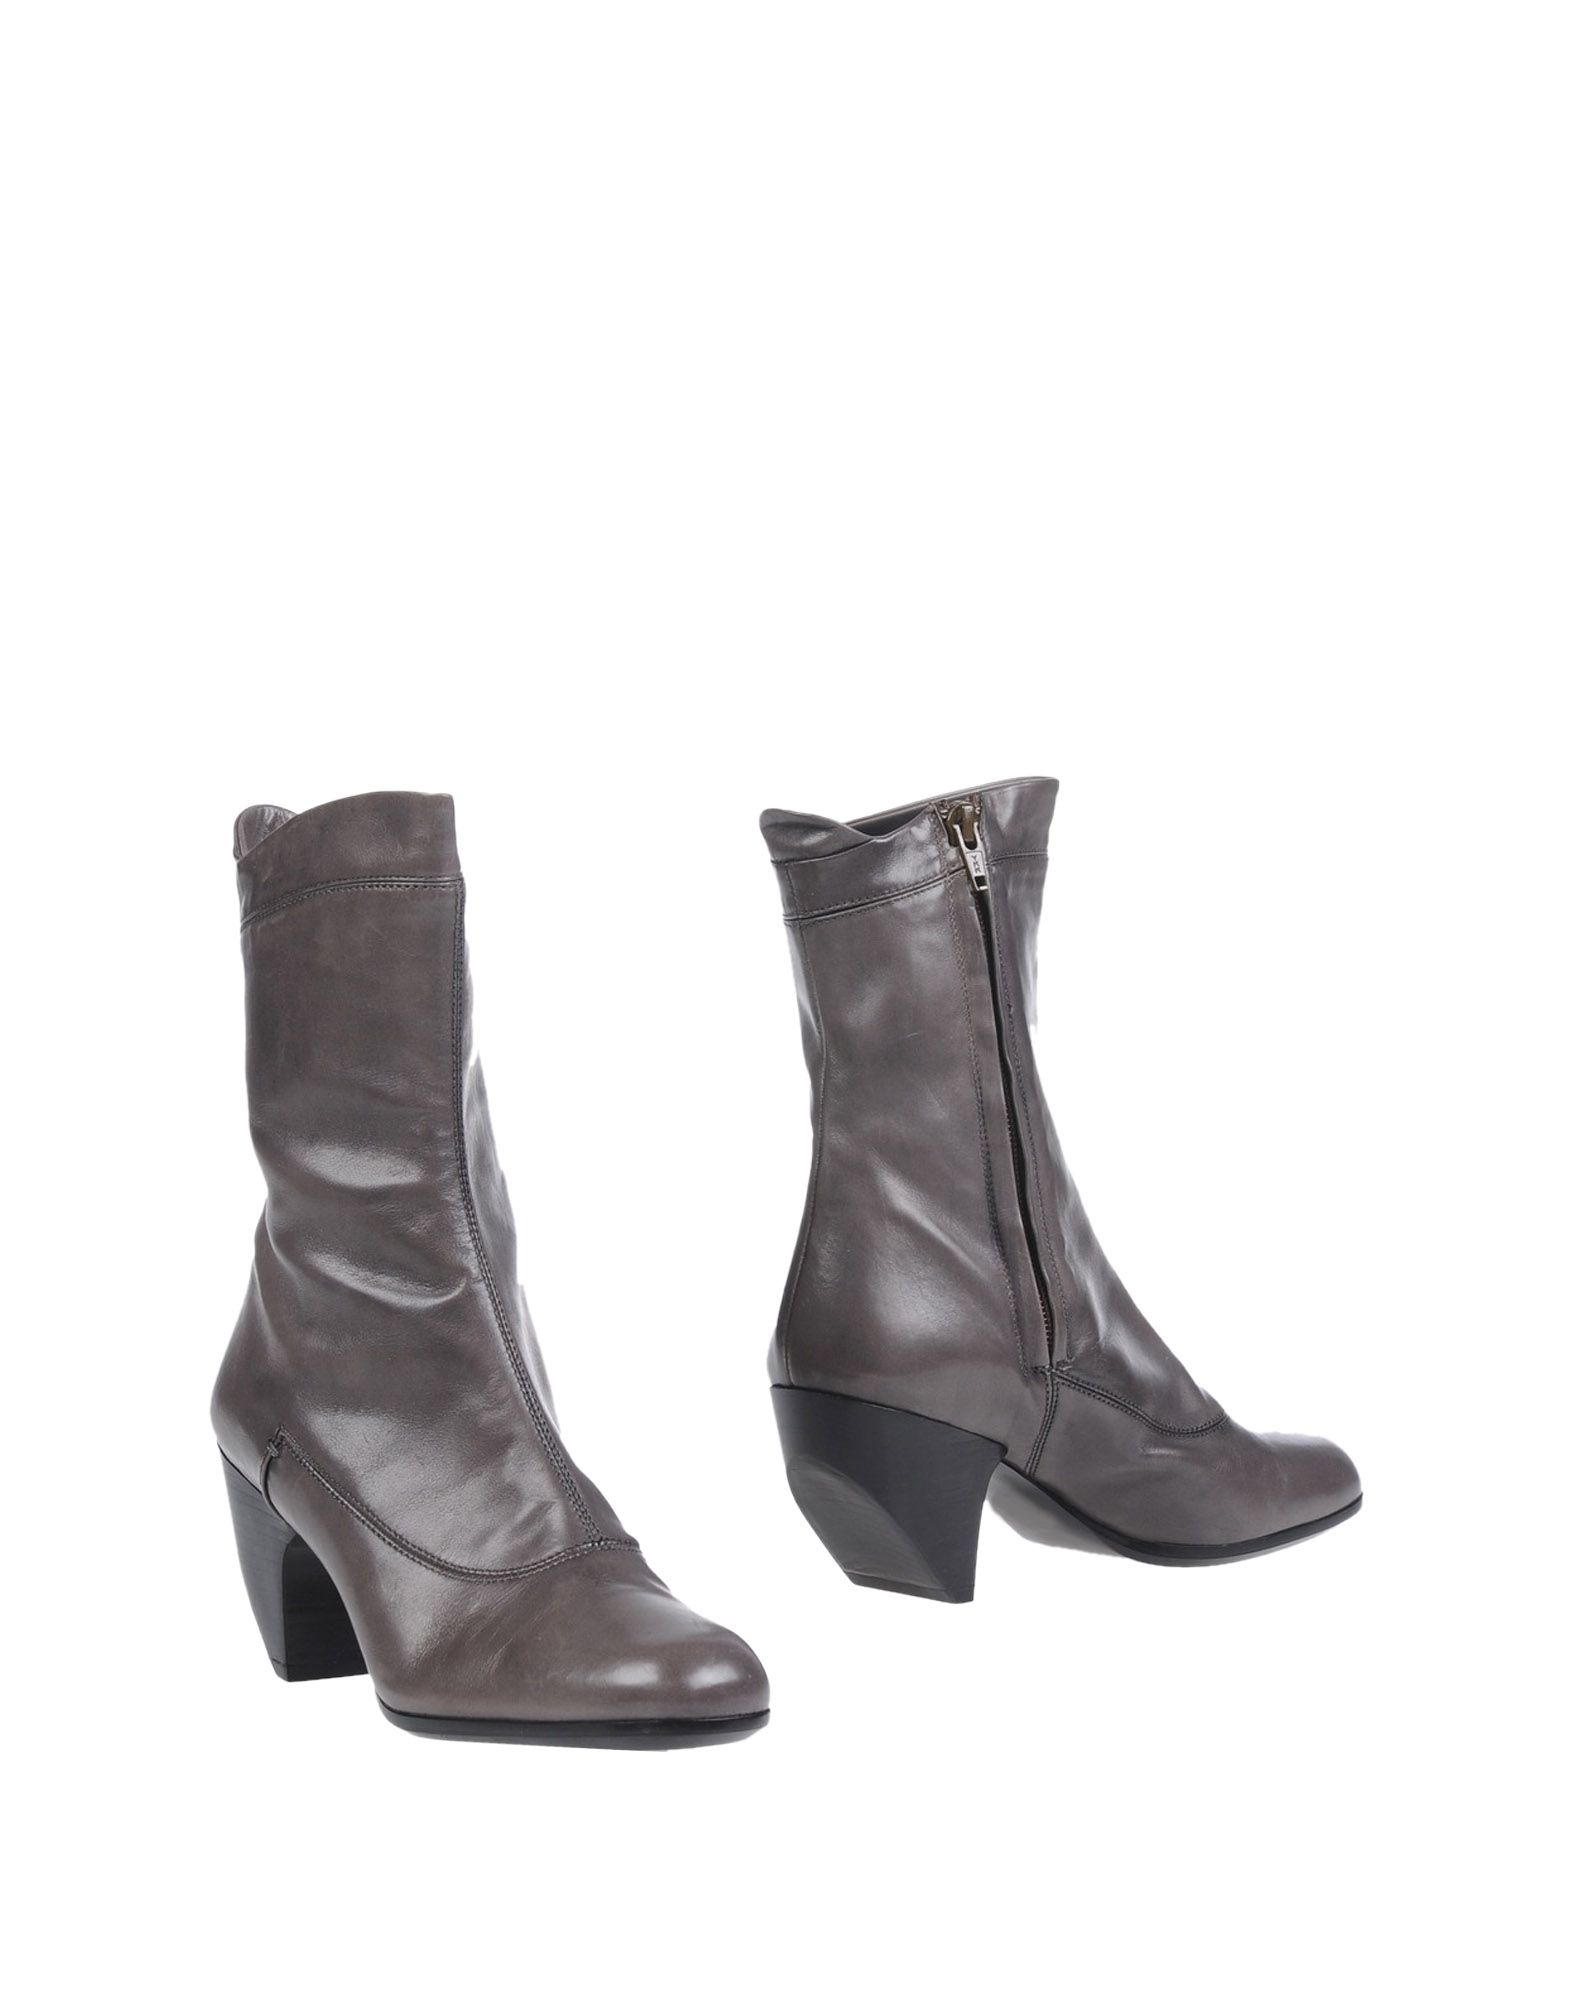 marc jacobs female marc jacobs ankle boots